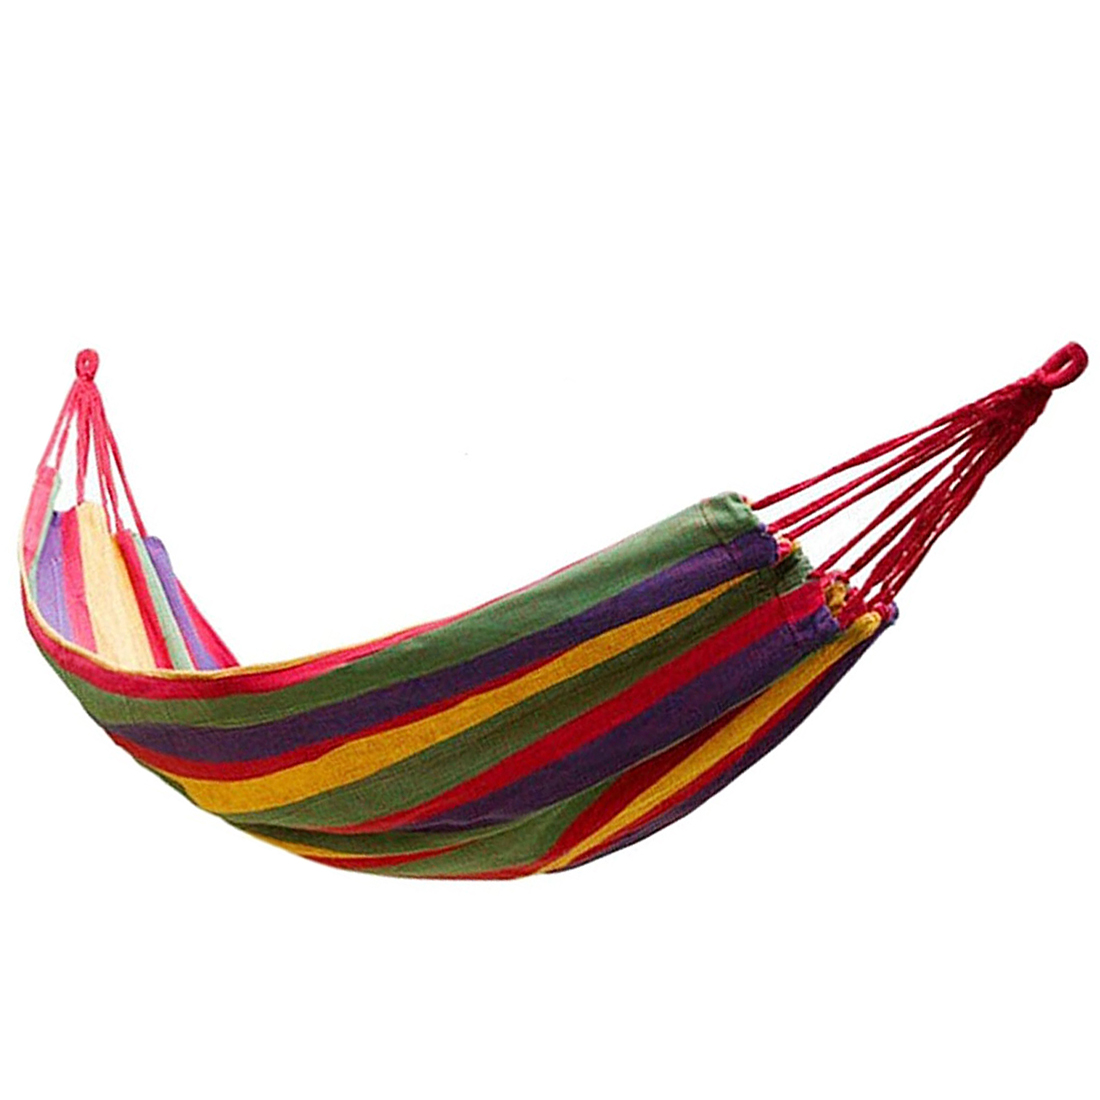 Portable Hammock Outdoor Hammock Garden Sports Home Travel Camping Swing Canvas Stripe Hang Bed Hammock Red acehmks travel camping swing portable outdoor garden hang bed hamac for camp canvas hammock with tree ropes blue red 200cmx80cm